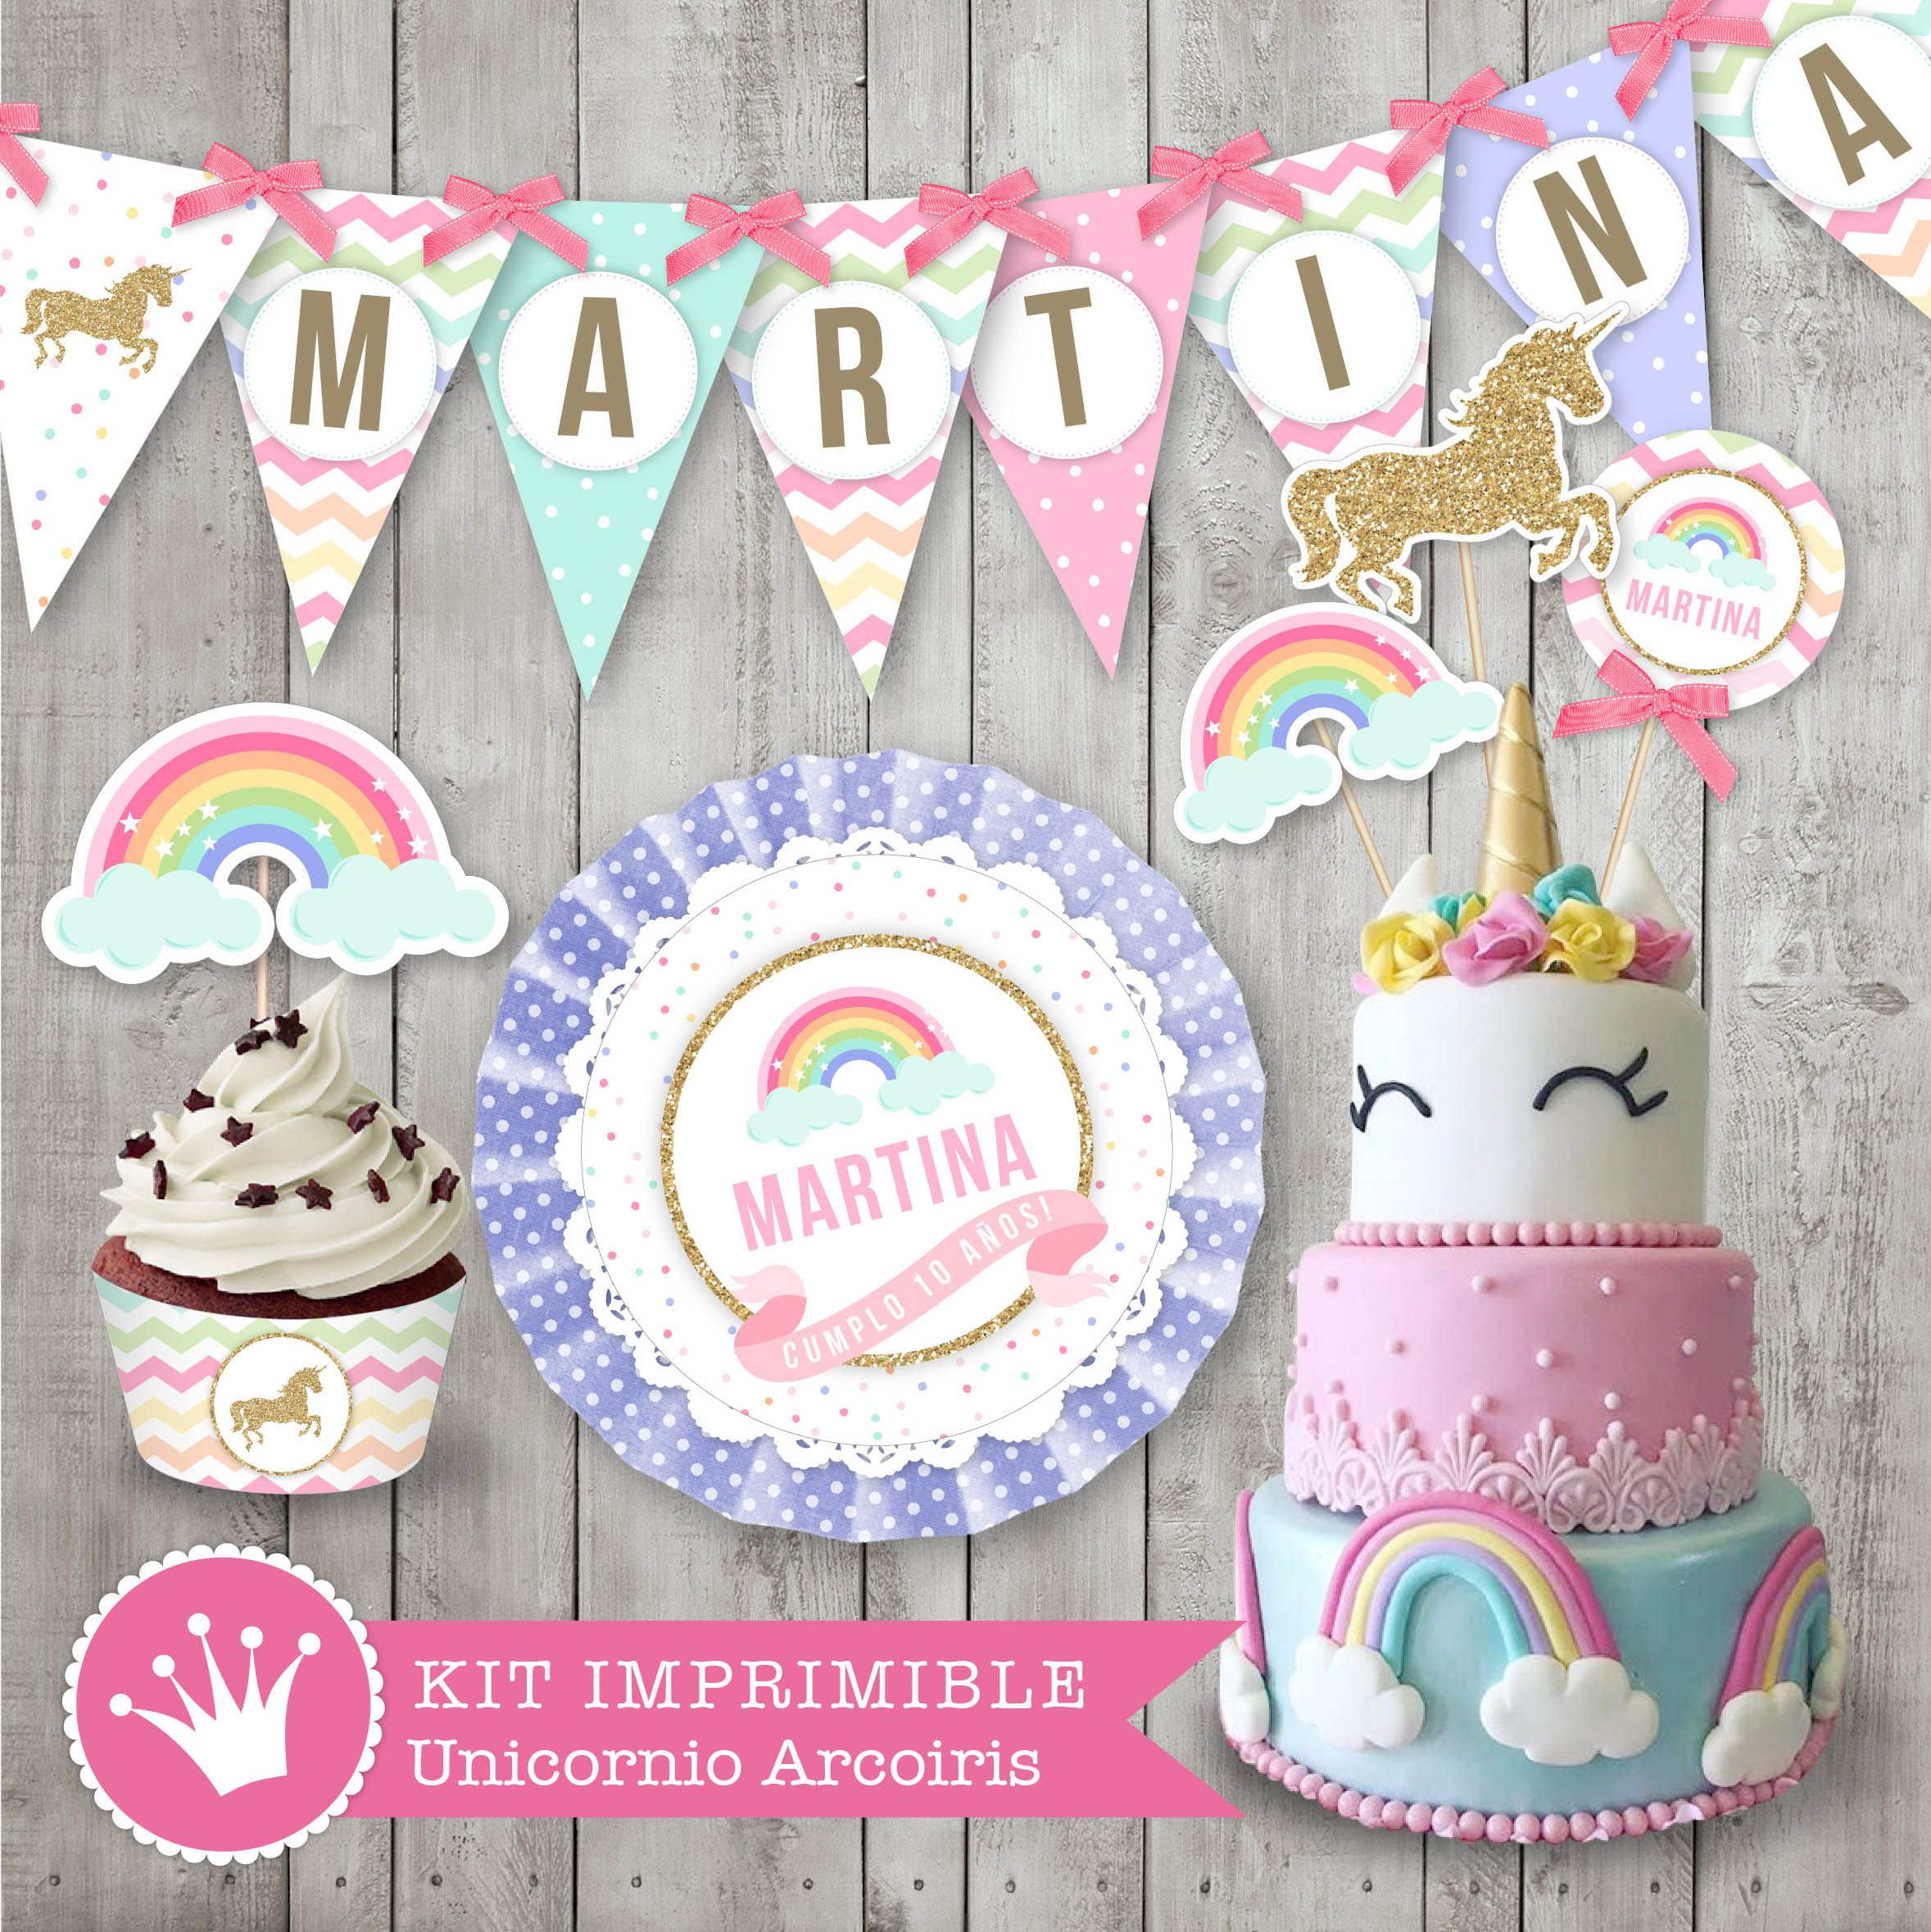 Kit imprimible unicornio y arcoiris decoraci n para - Decoracion estilo shabby chic ...